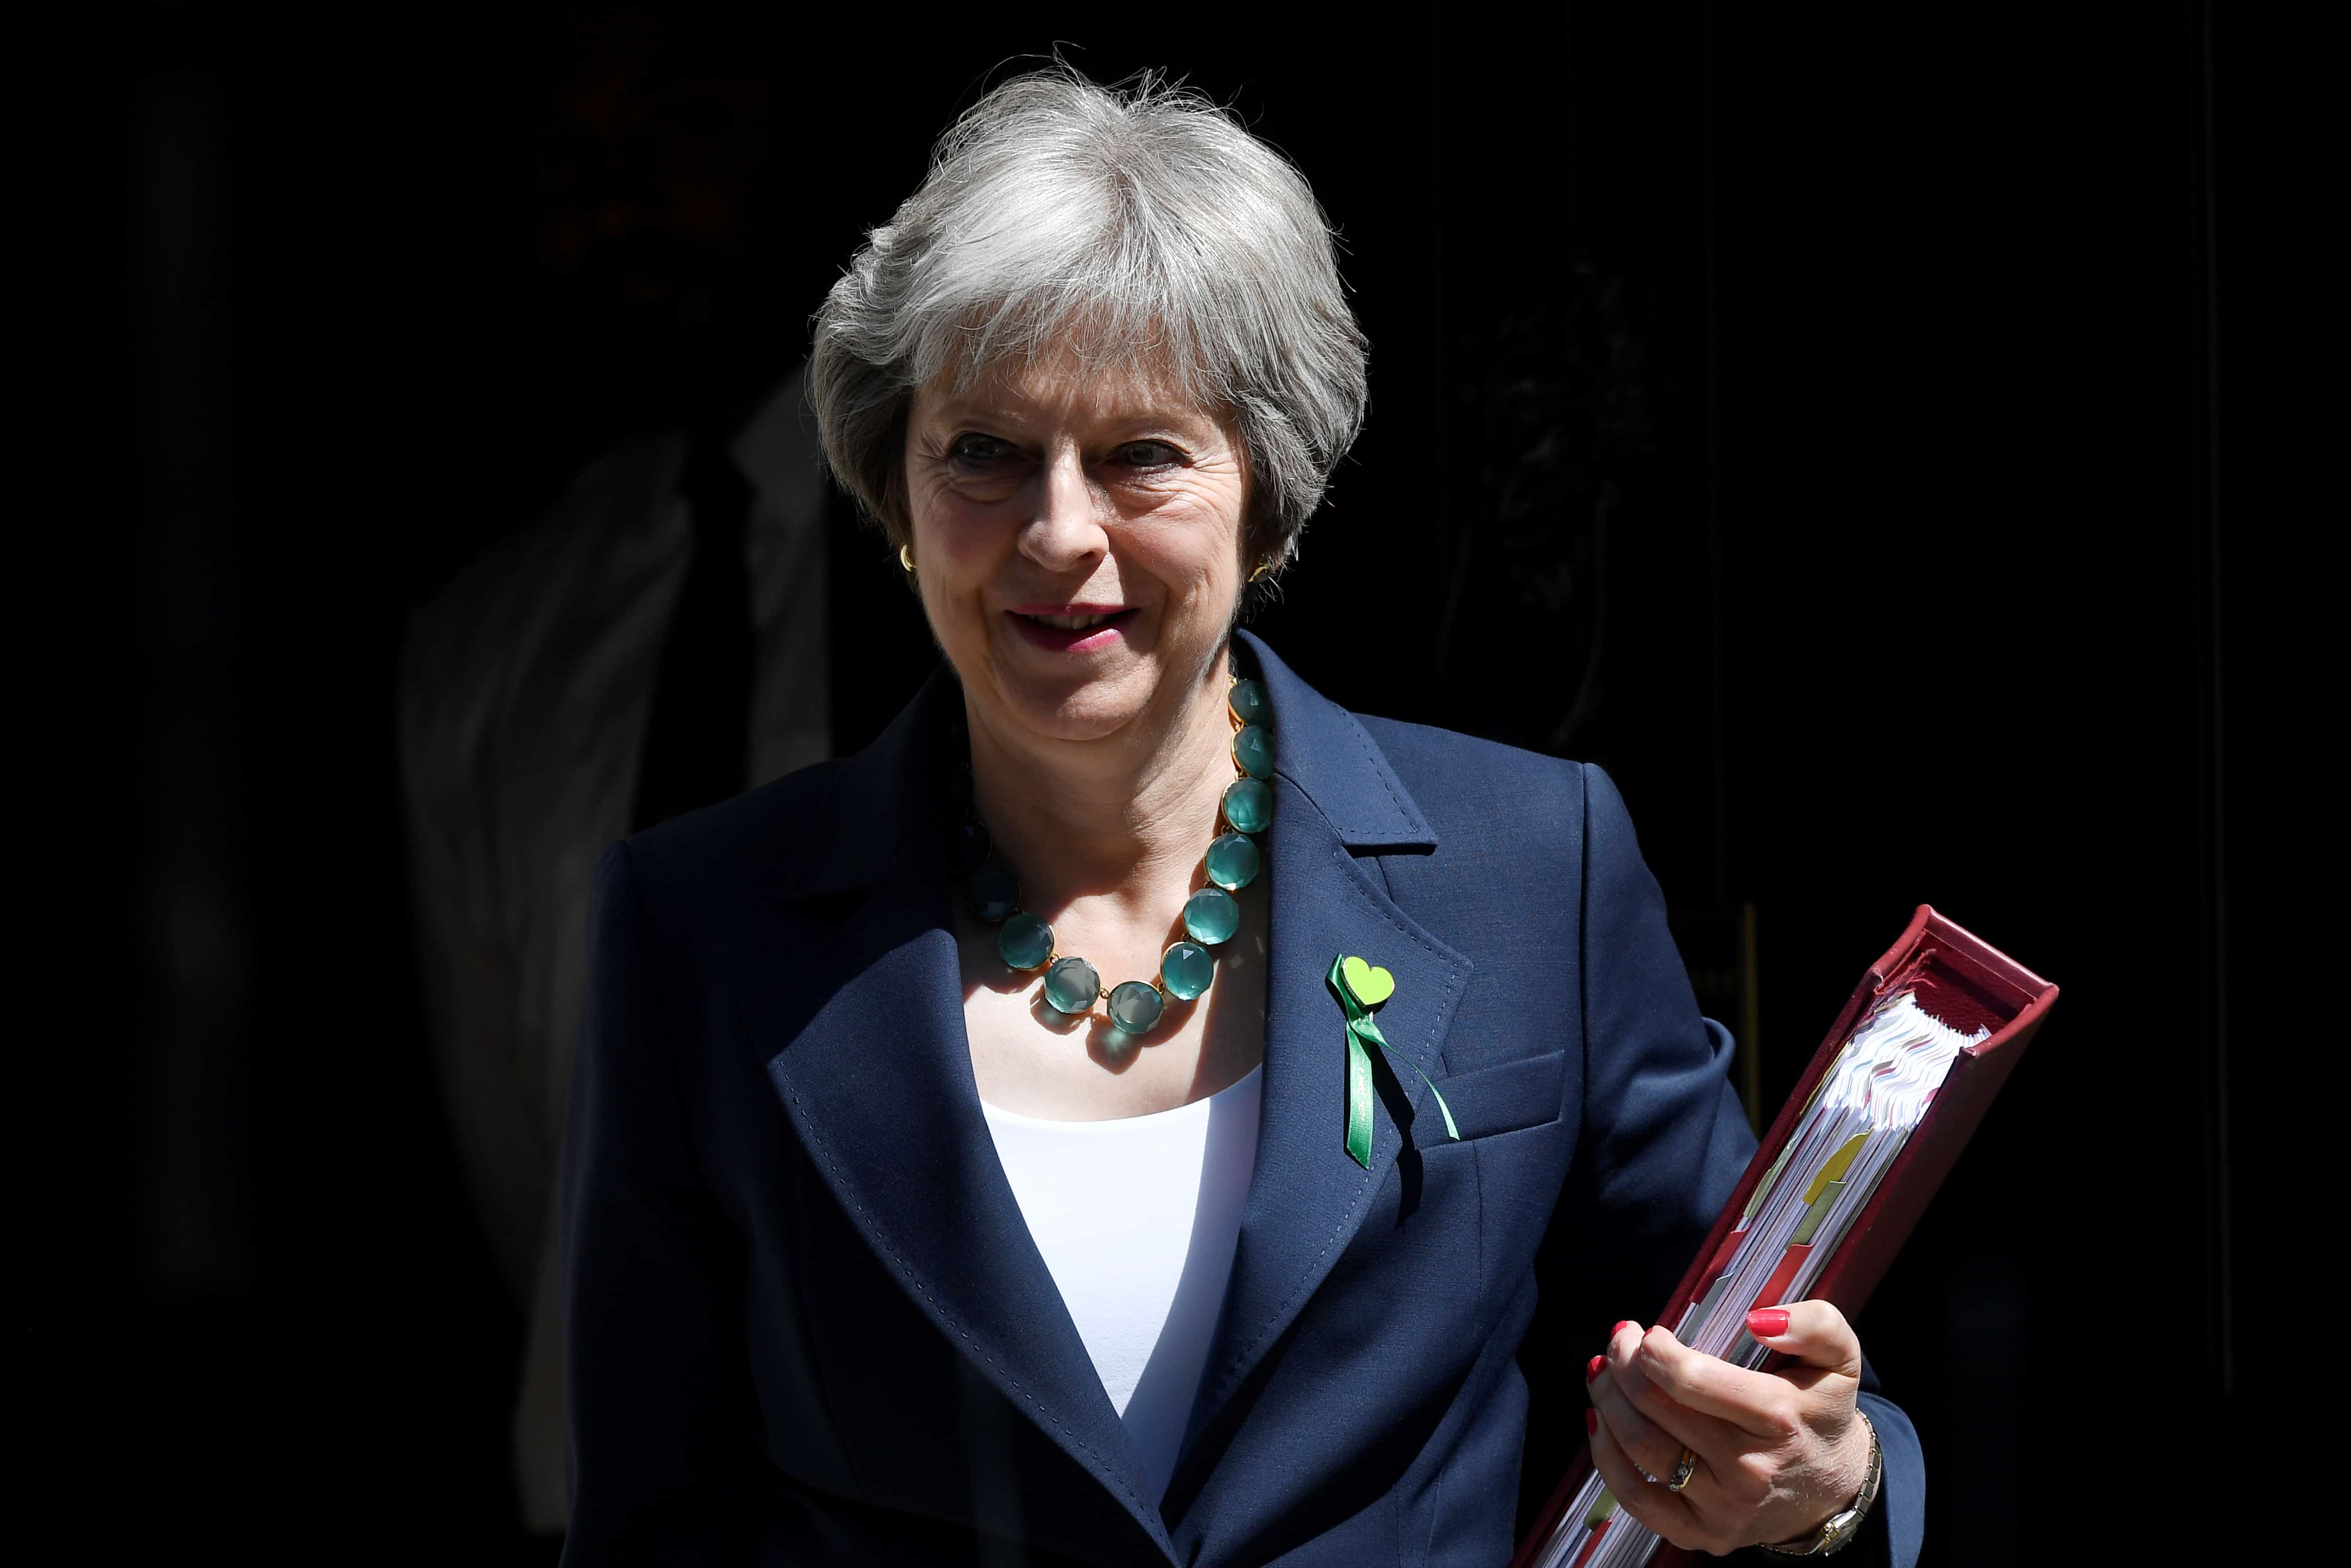 UK PM May's healthcare funding rise wins broad cabinet support: spokesman